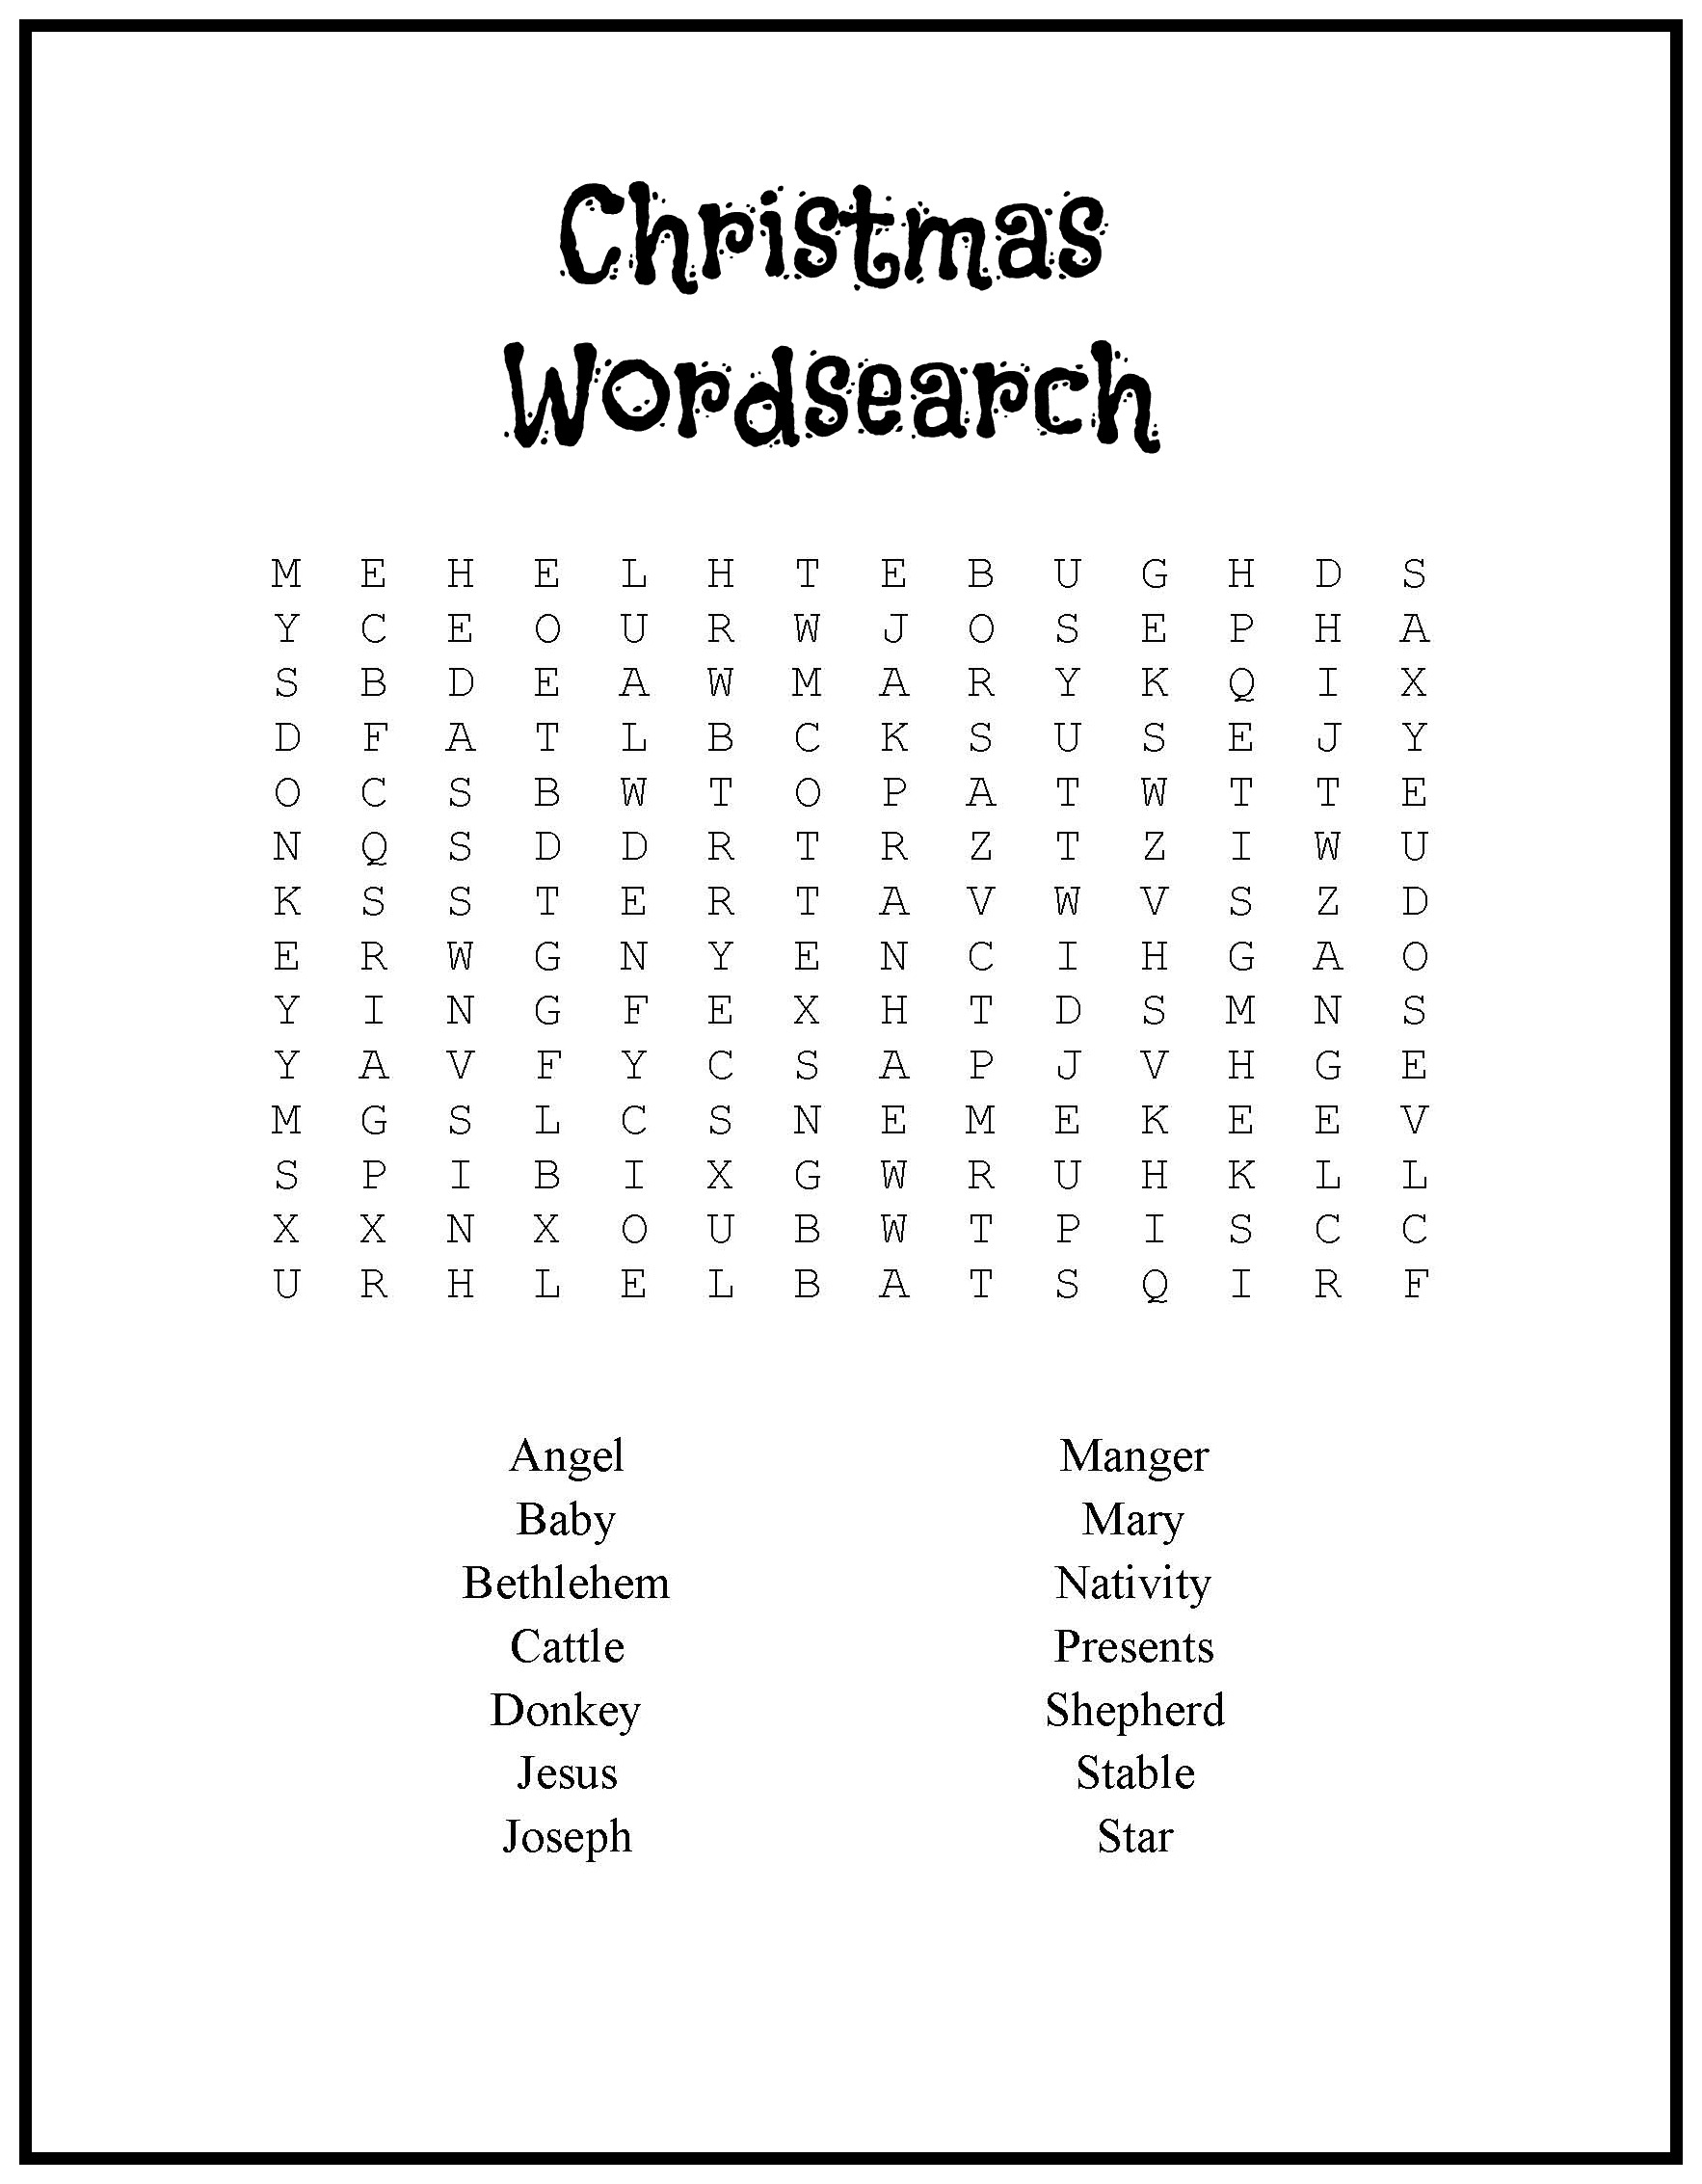 christmas coloring pages religious doodles christmaswordsearch christmas coloring pages religious doodlesprintable nativity word search